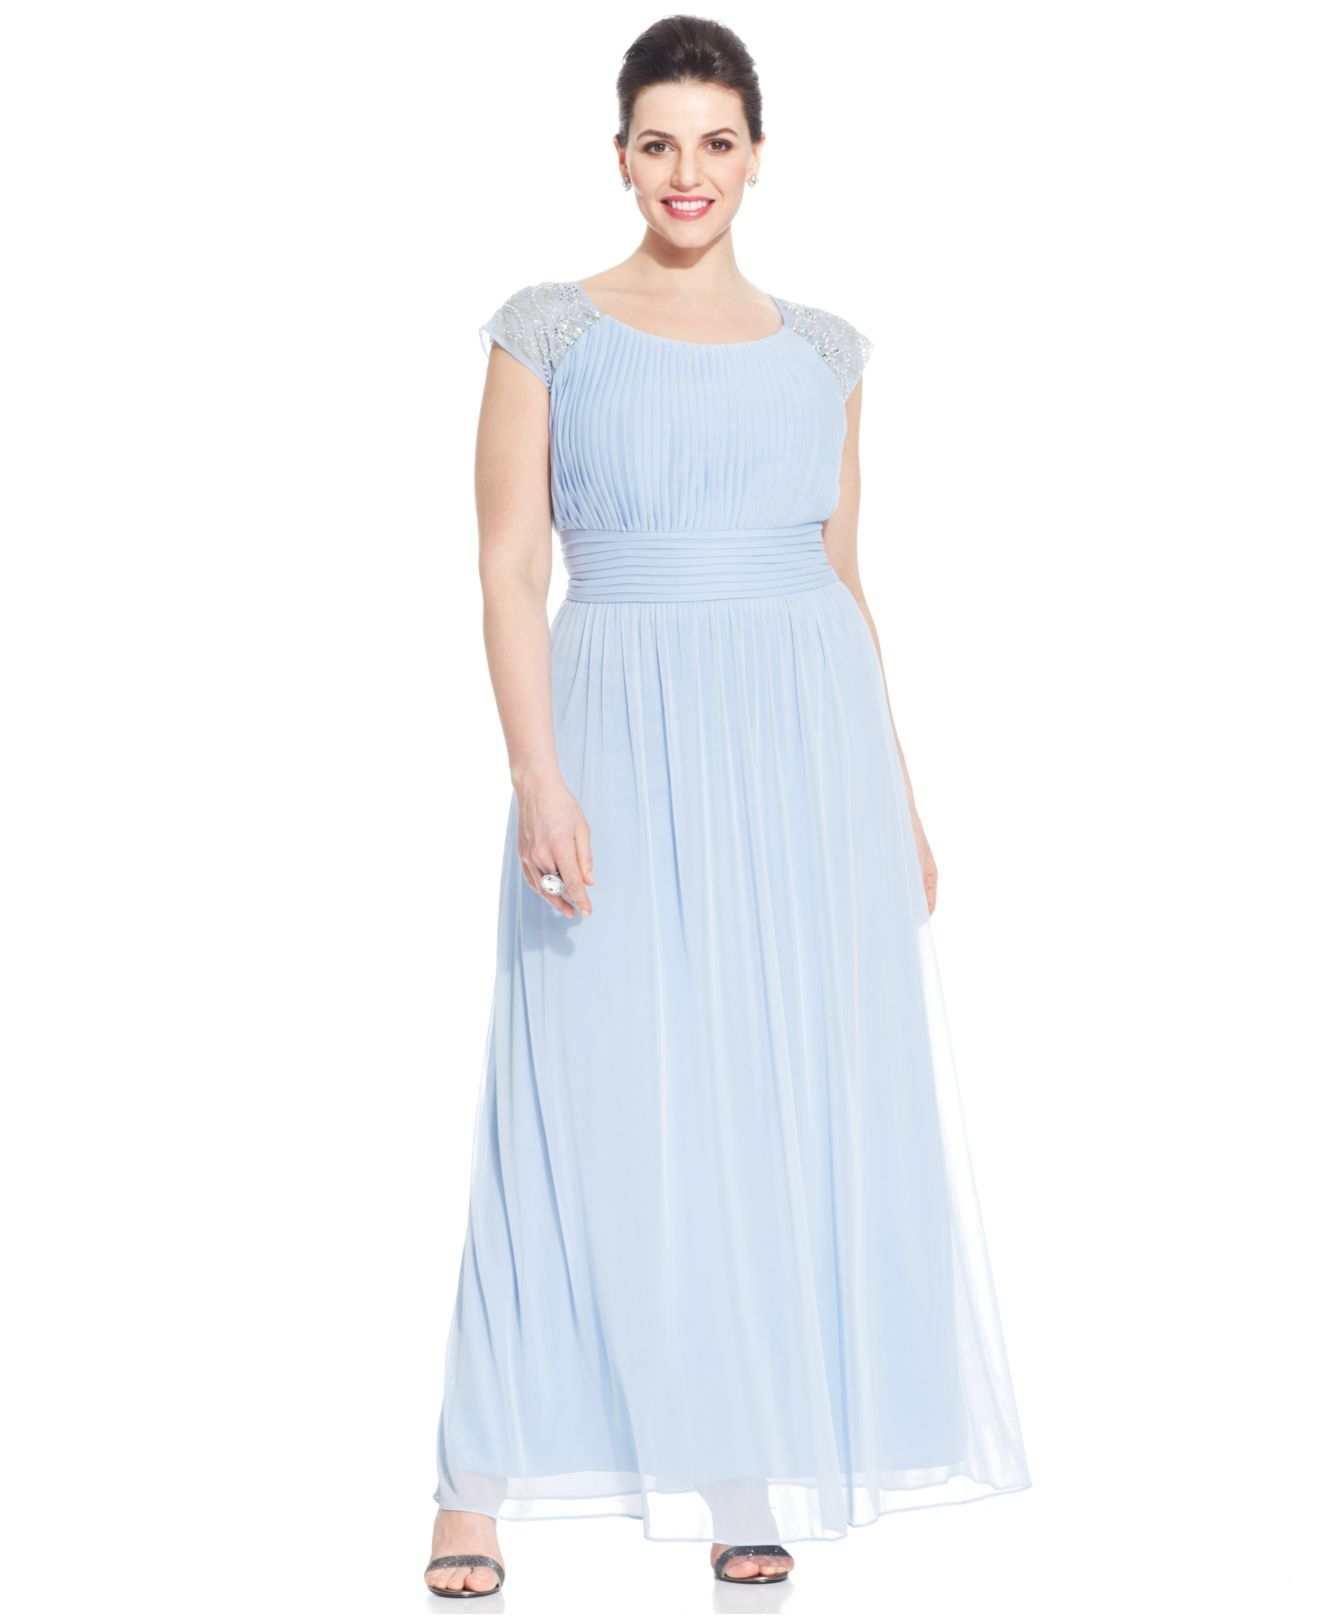 Lyst Patra Plus Size Embellished Cap Sleeve Gown In Blue